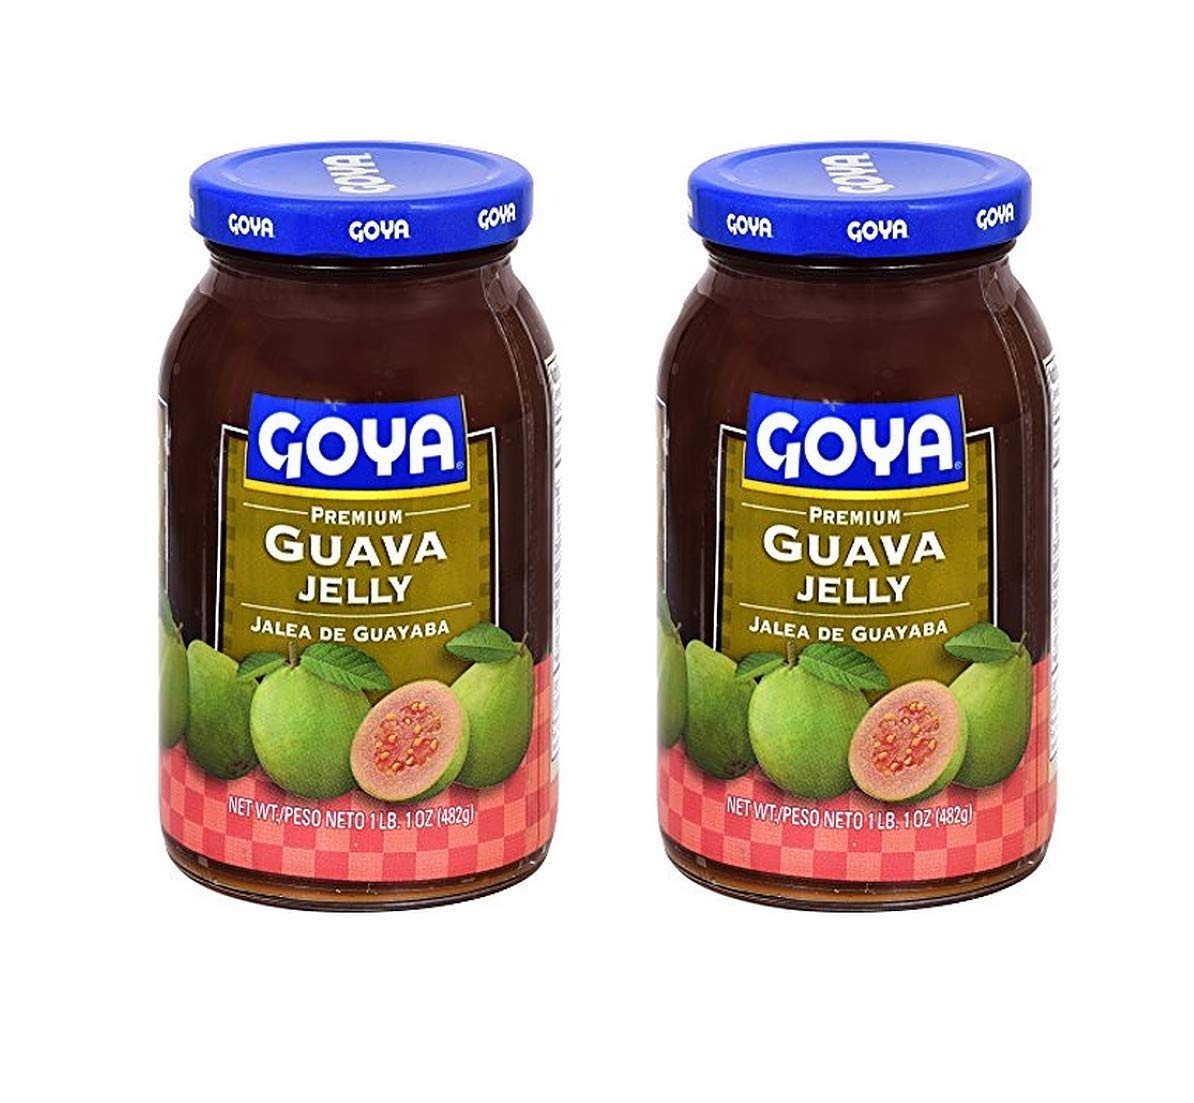 Goya Premium Courier supreme shipping free Guava Jelly 2 Pack Total 964g of